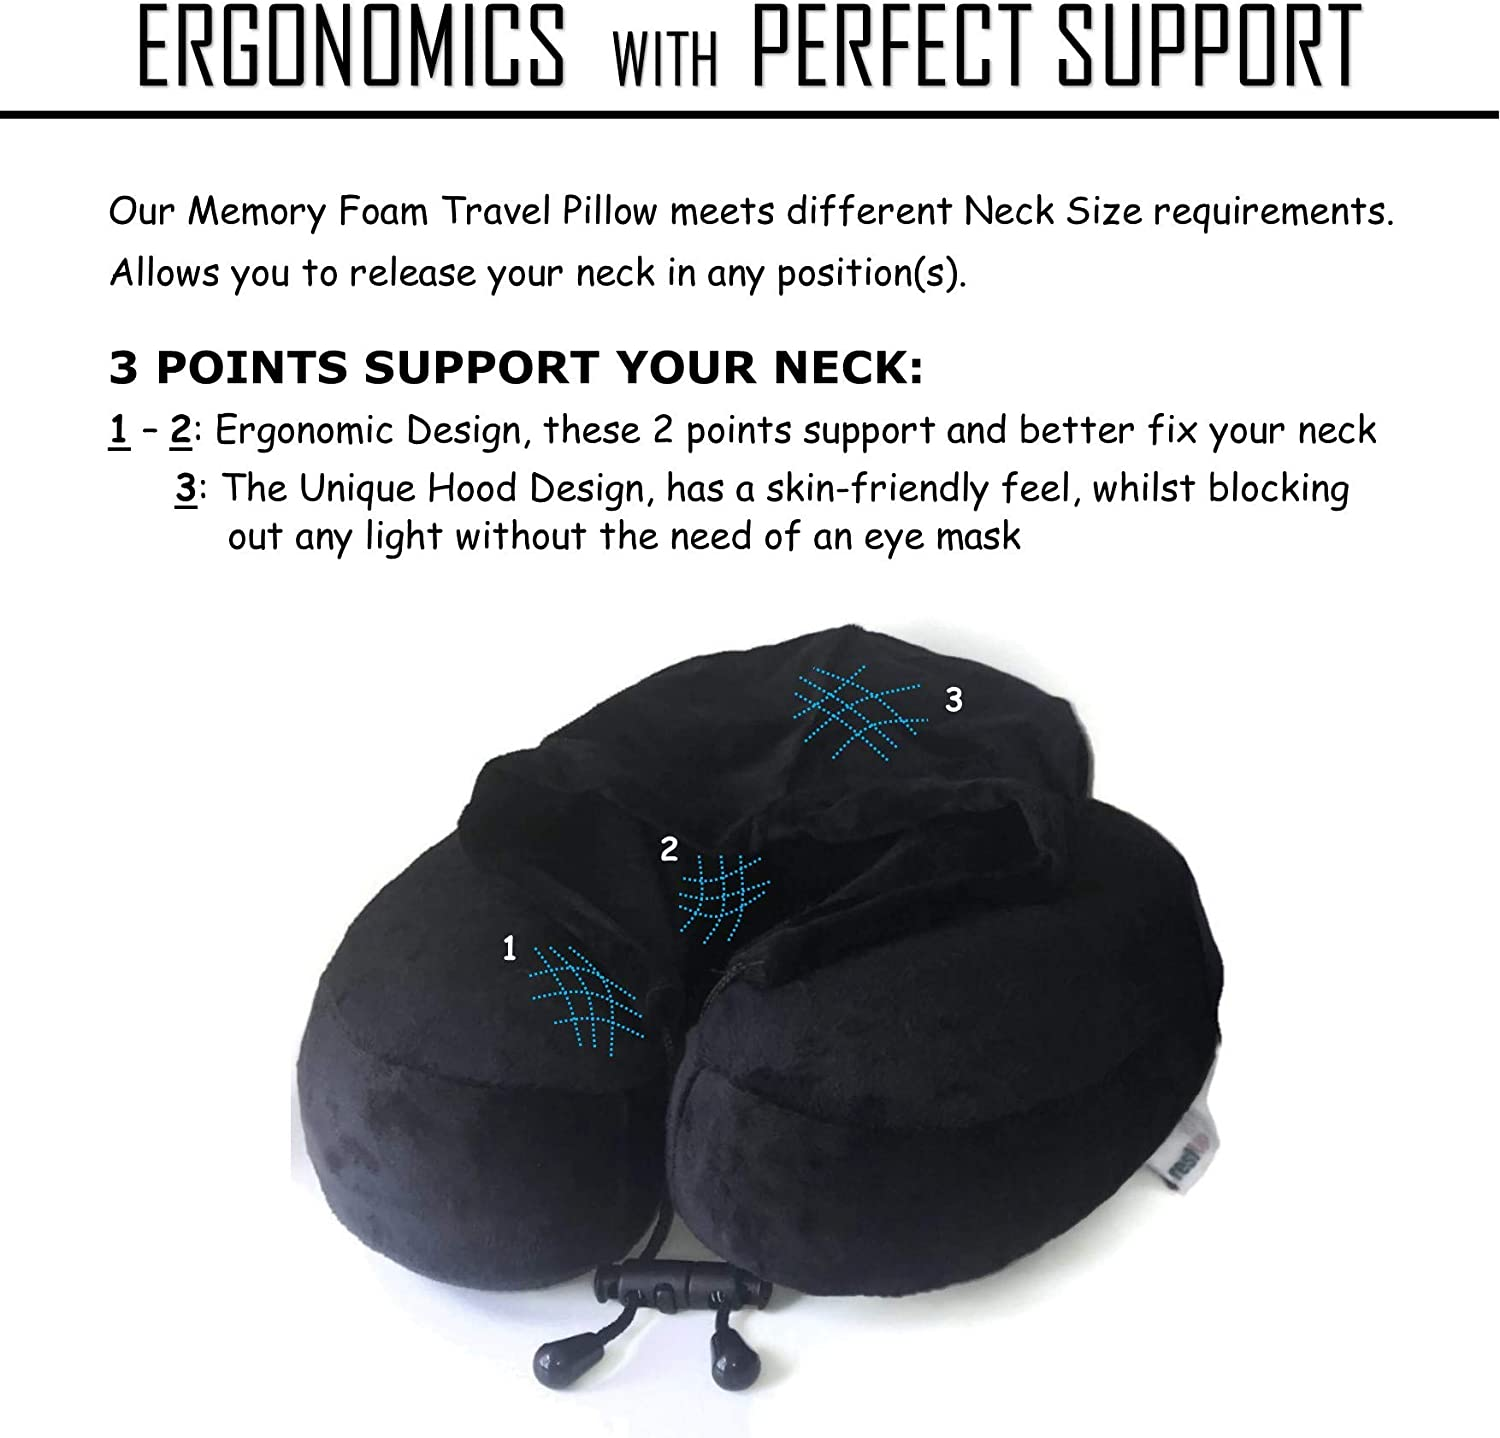 RestUp Travel Pillow | Perfect Support for Head, Chin and Neck Super Soft Velour with Memory Foam | One Size for Adults & Kids (Black) UK Company